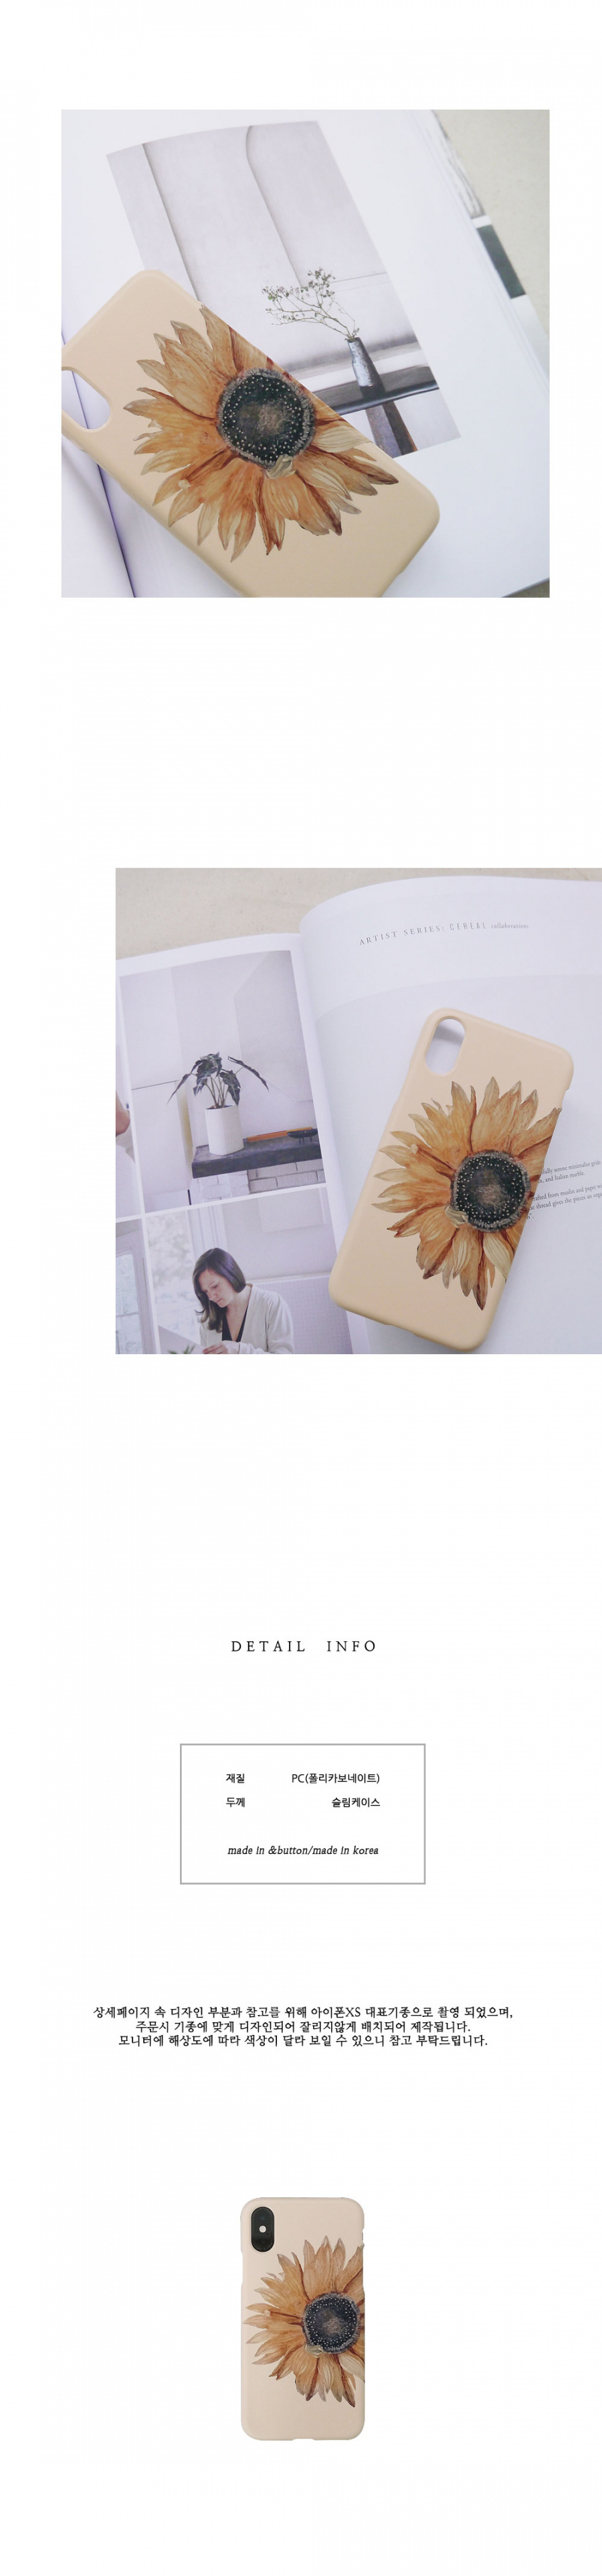 앤버튼(ANDBUTTON) sunflower